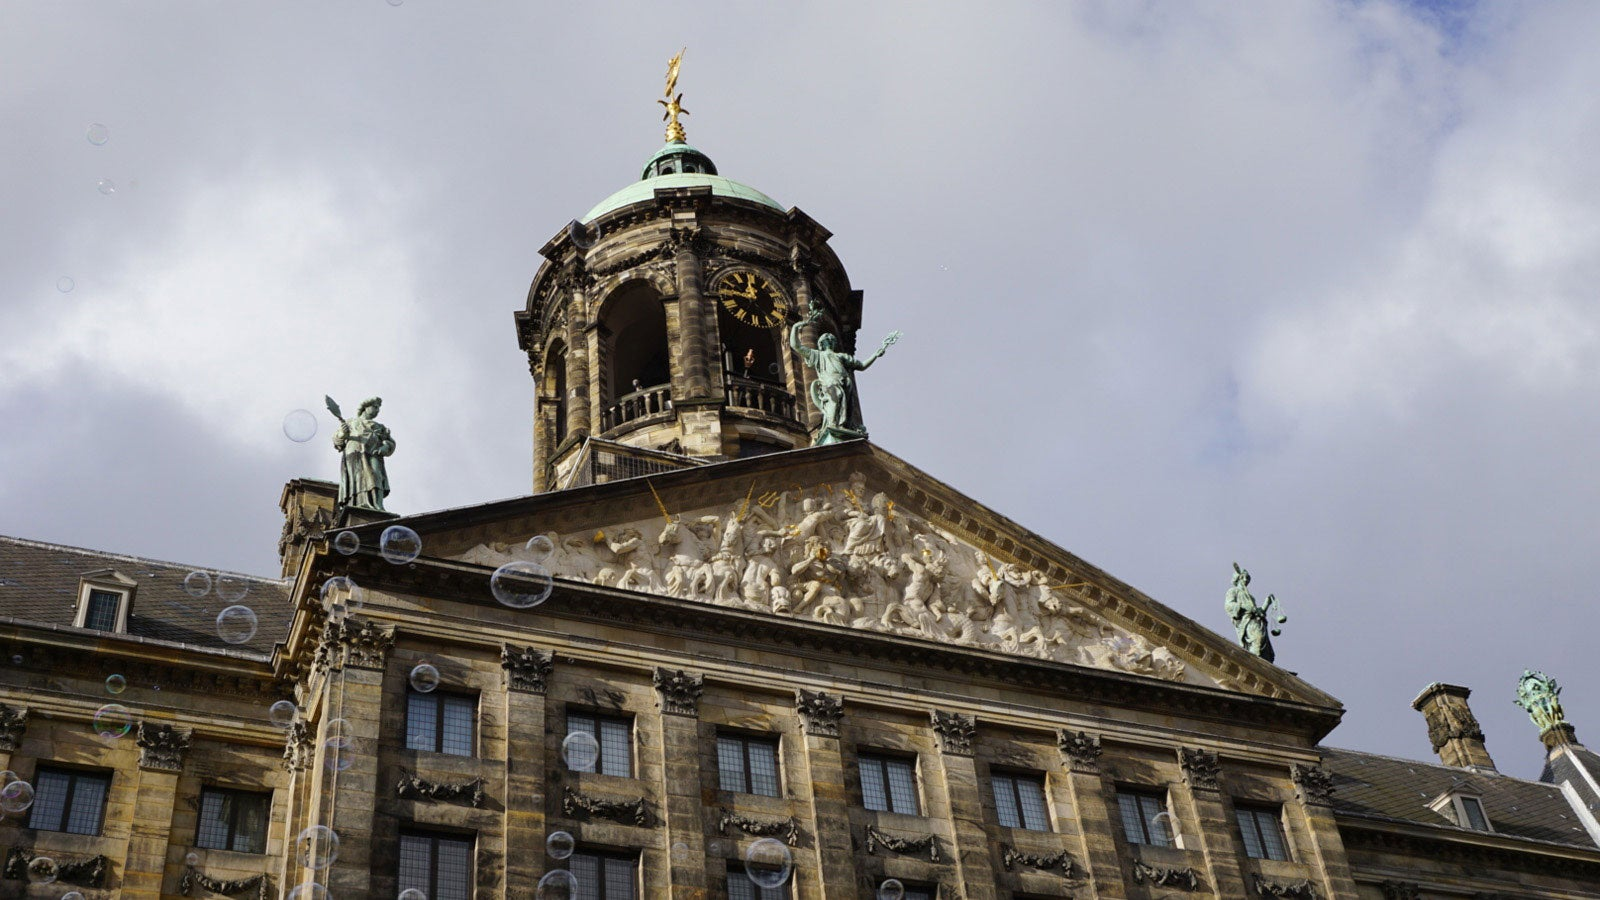 Close up of The Stadhuis Amsterdam showing statues on the roof